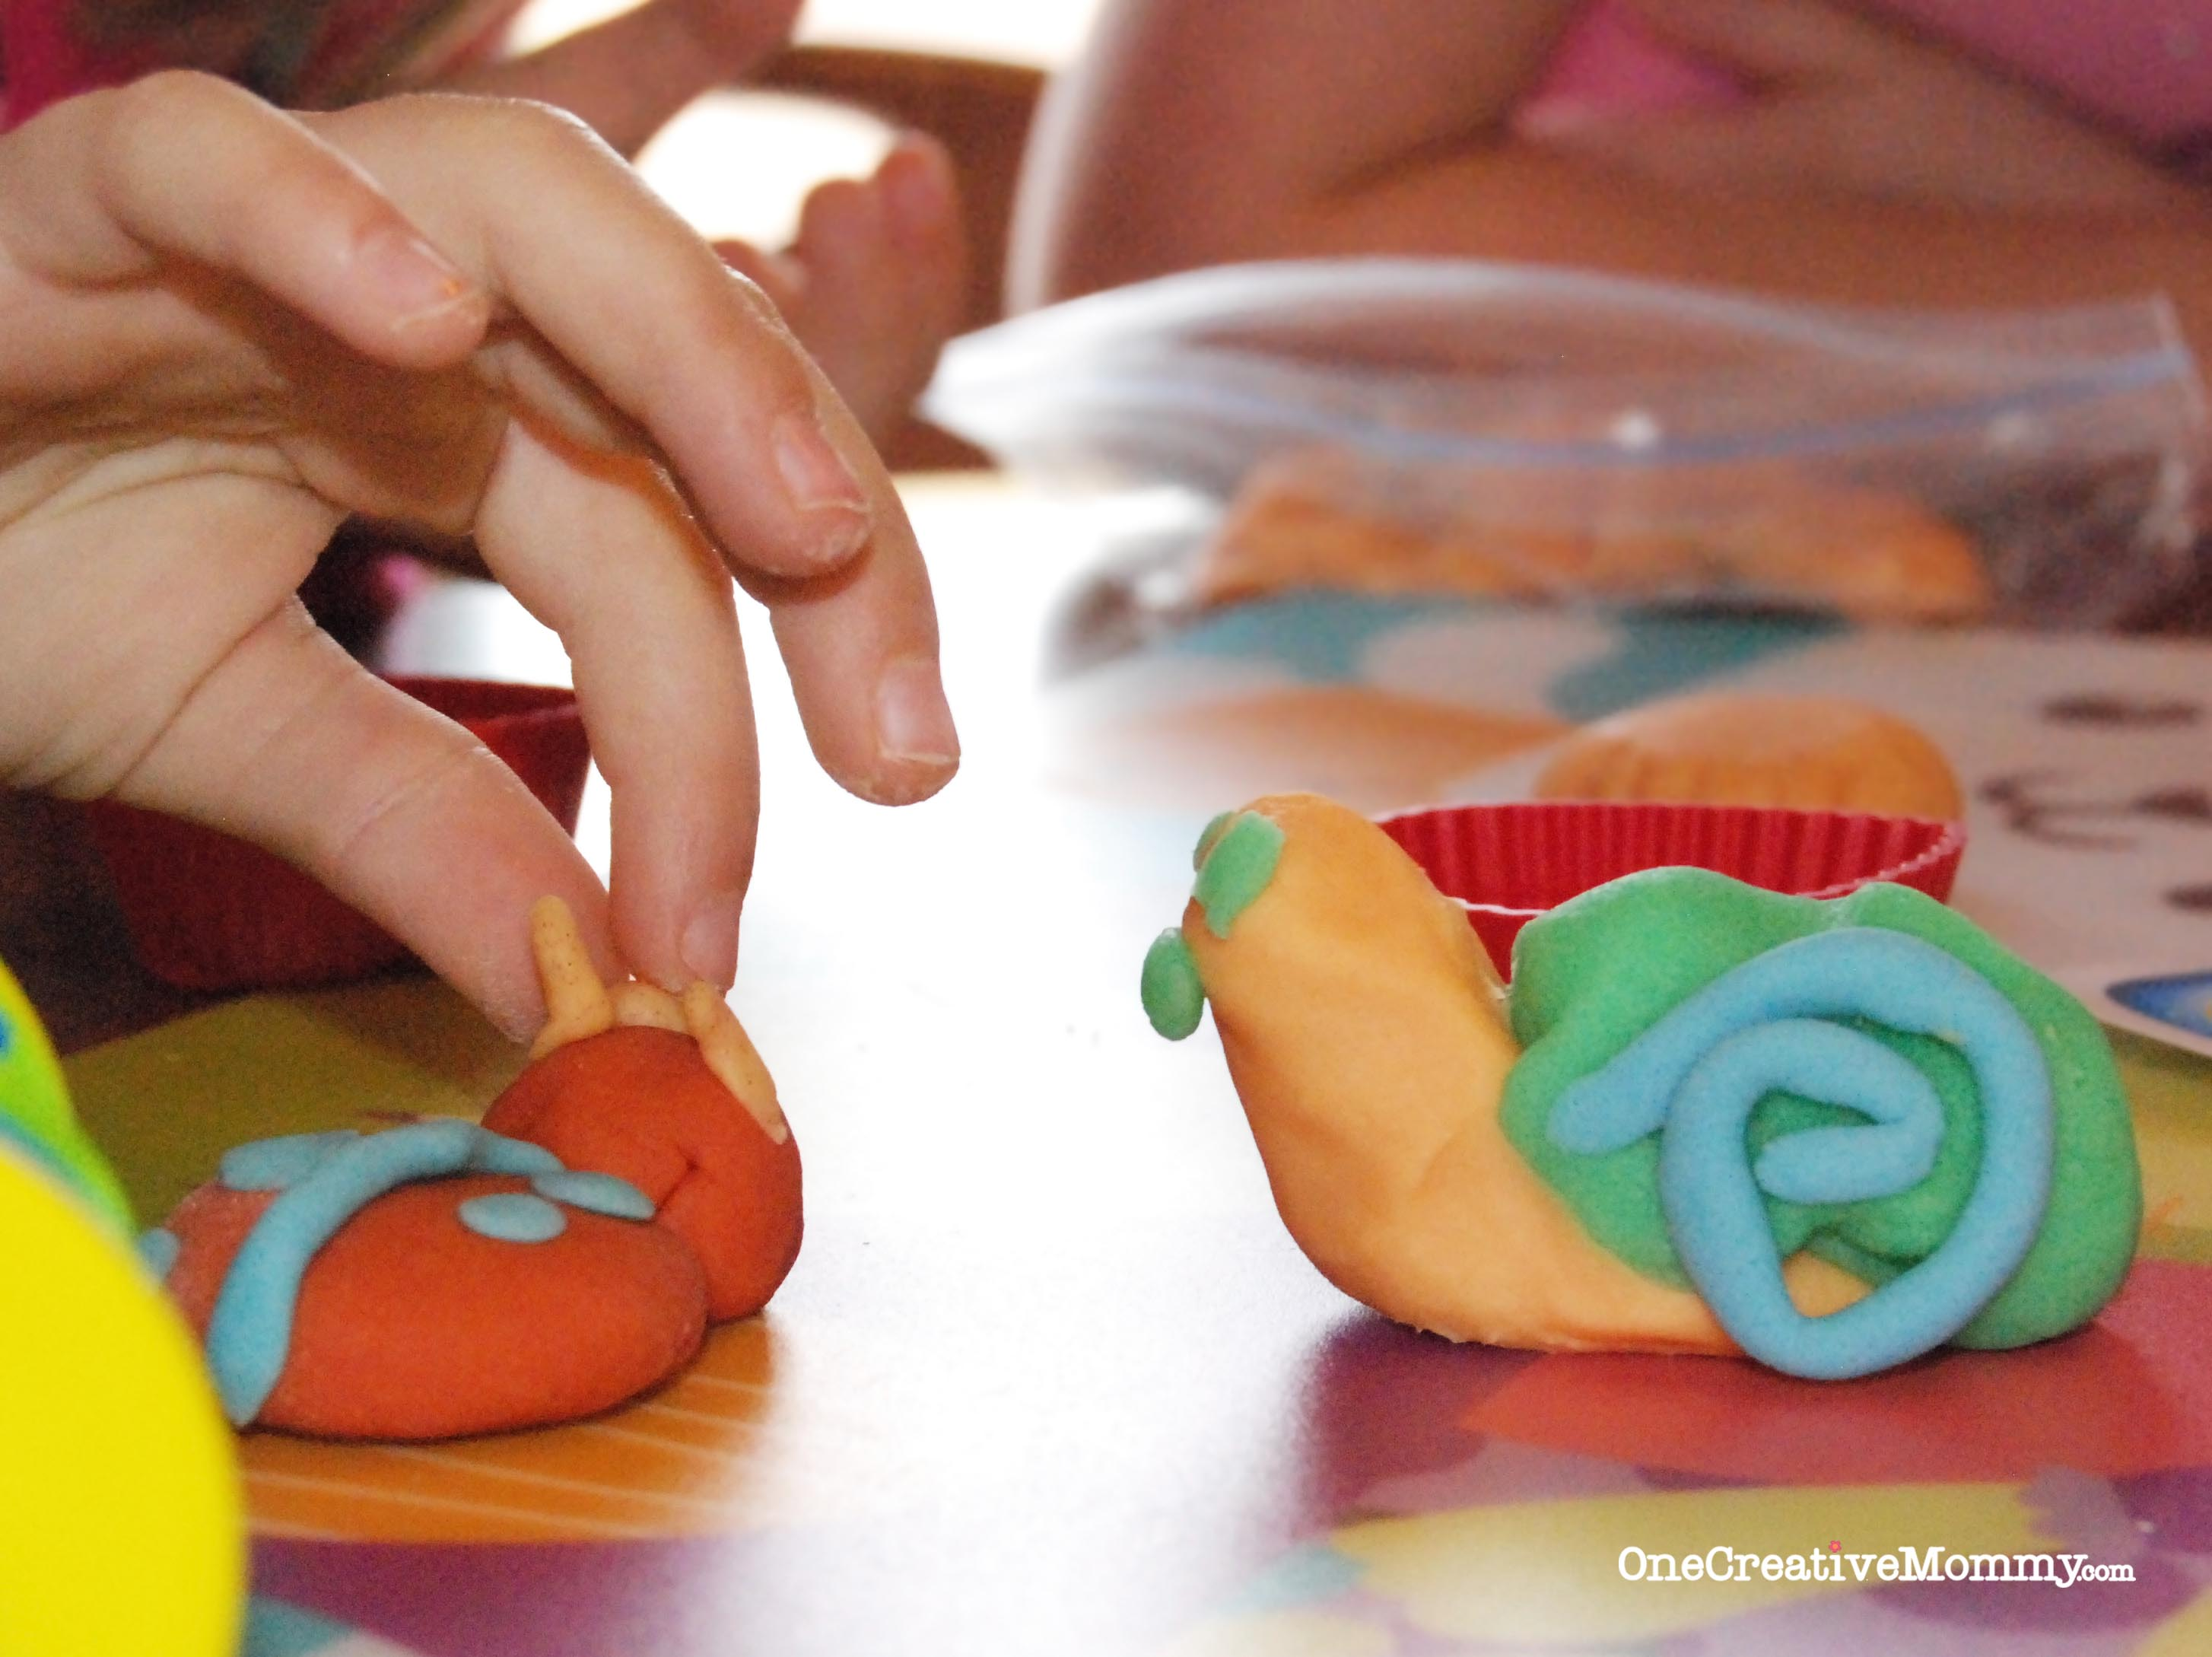 Gluten-Free-Play-Dough-Recipe-Review-and-Tips-Snail